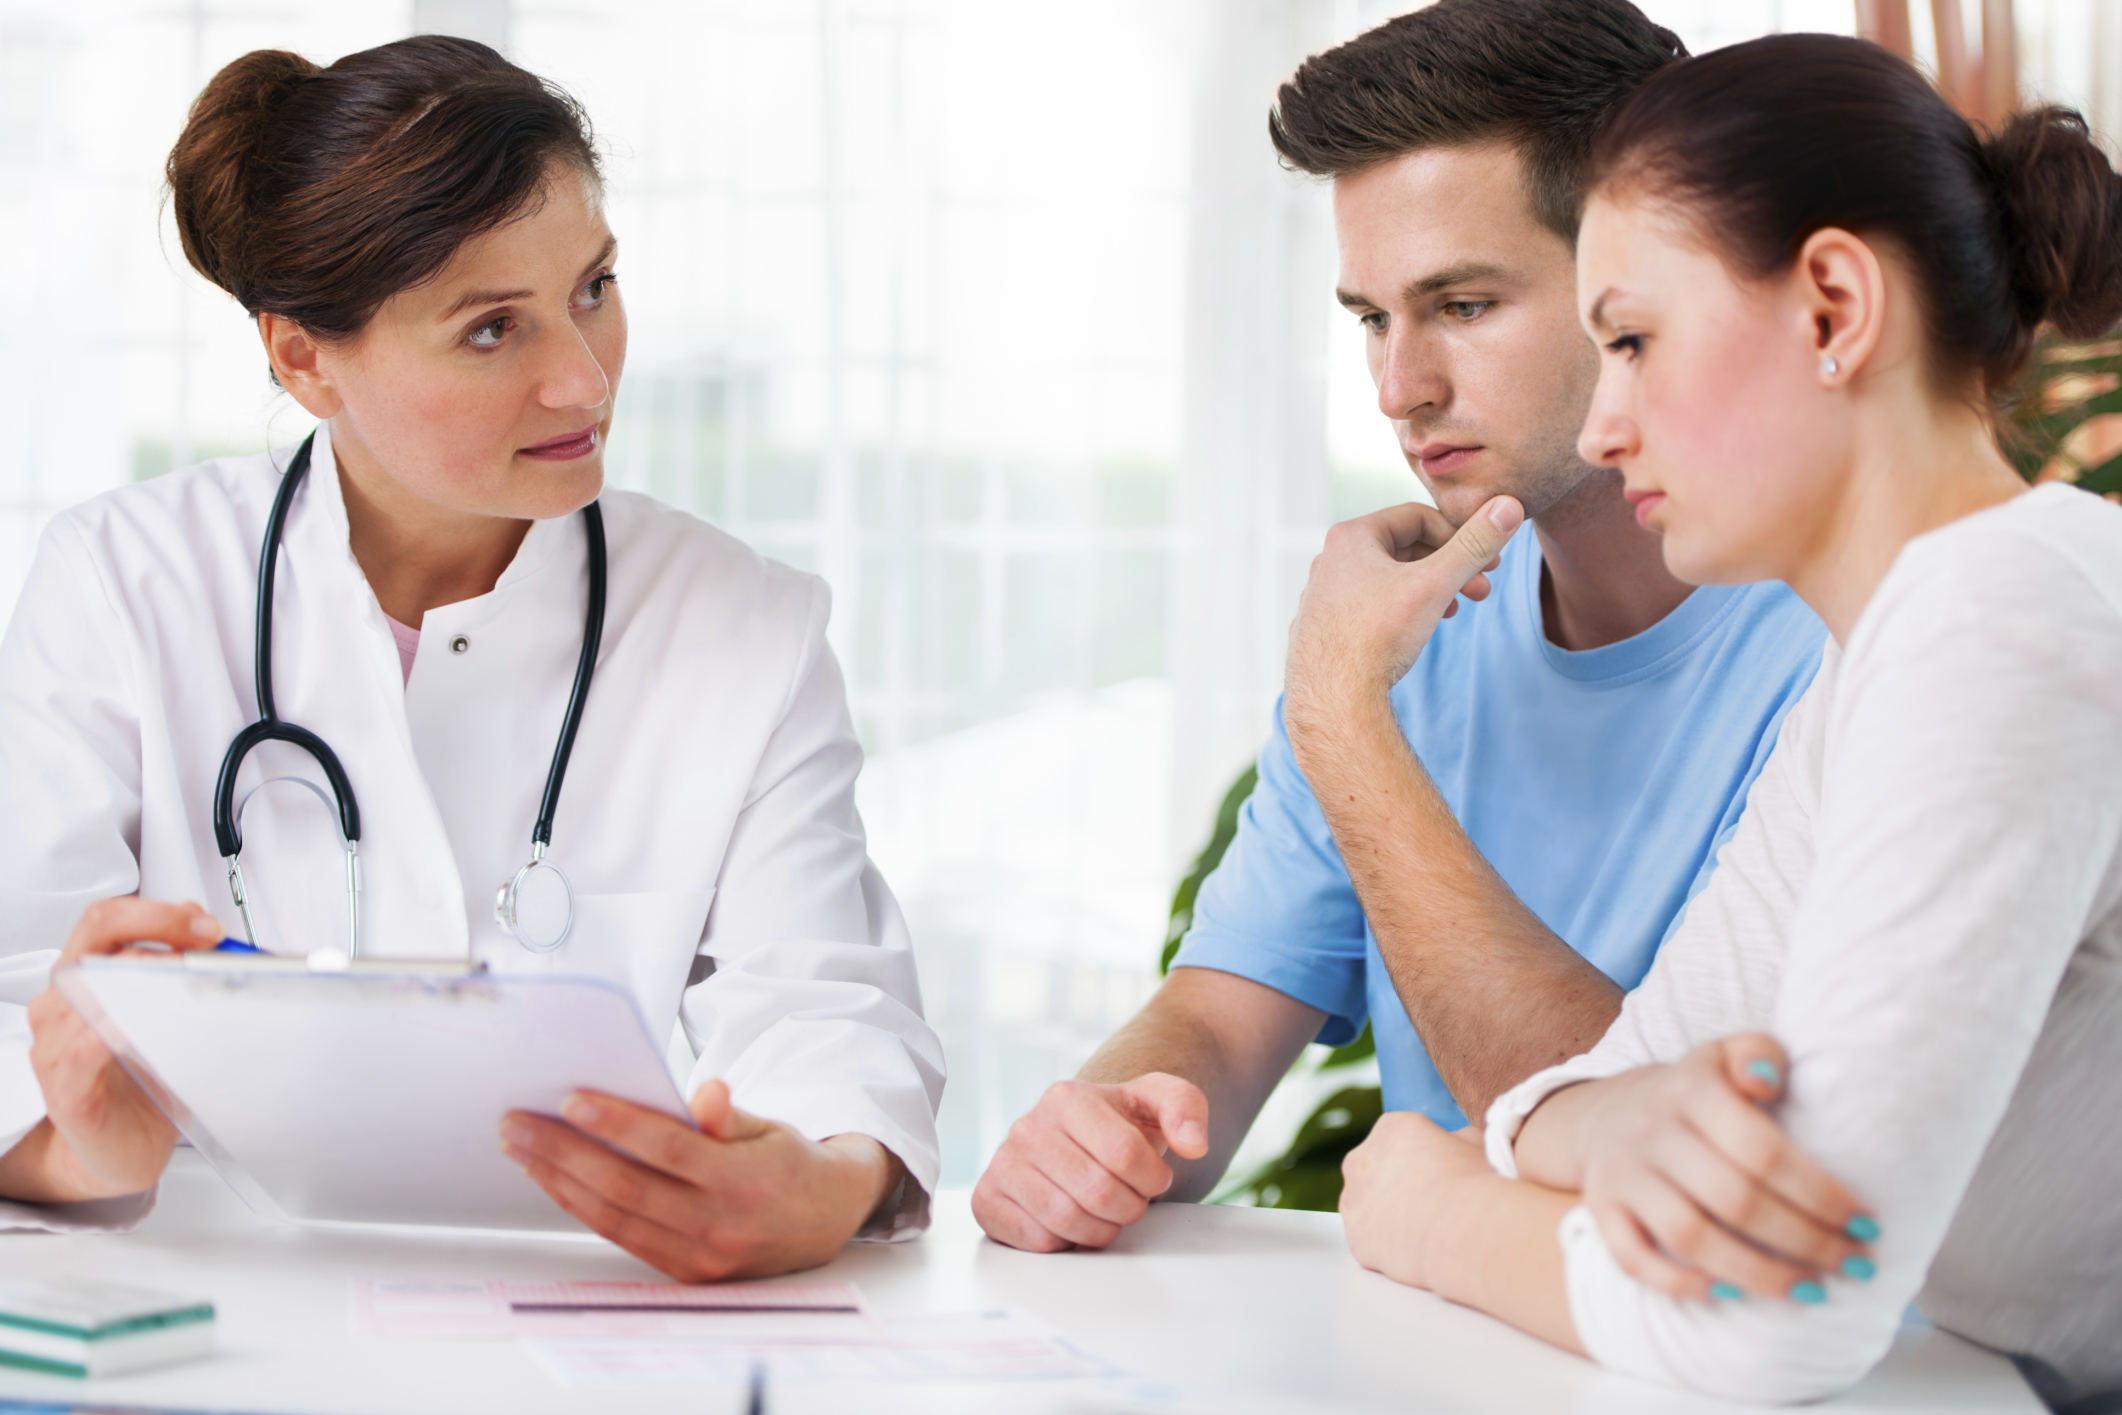 Will going through chemotherapy or radiation affect my fertility?